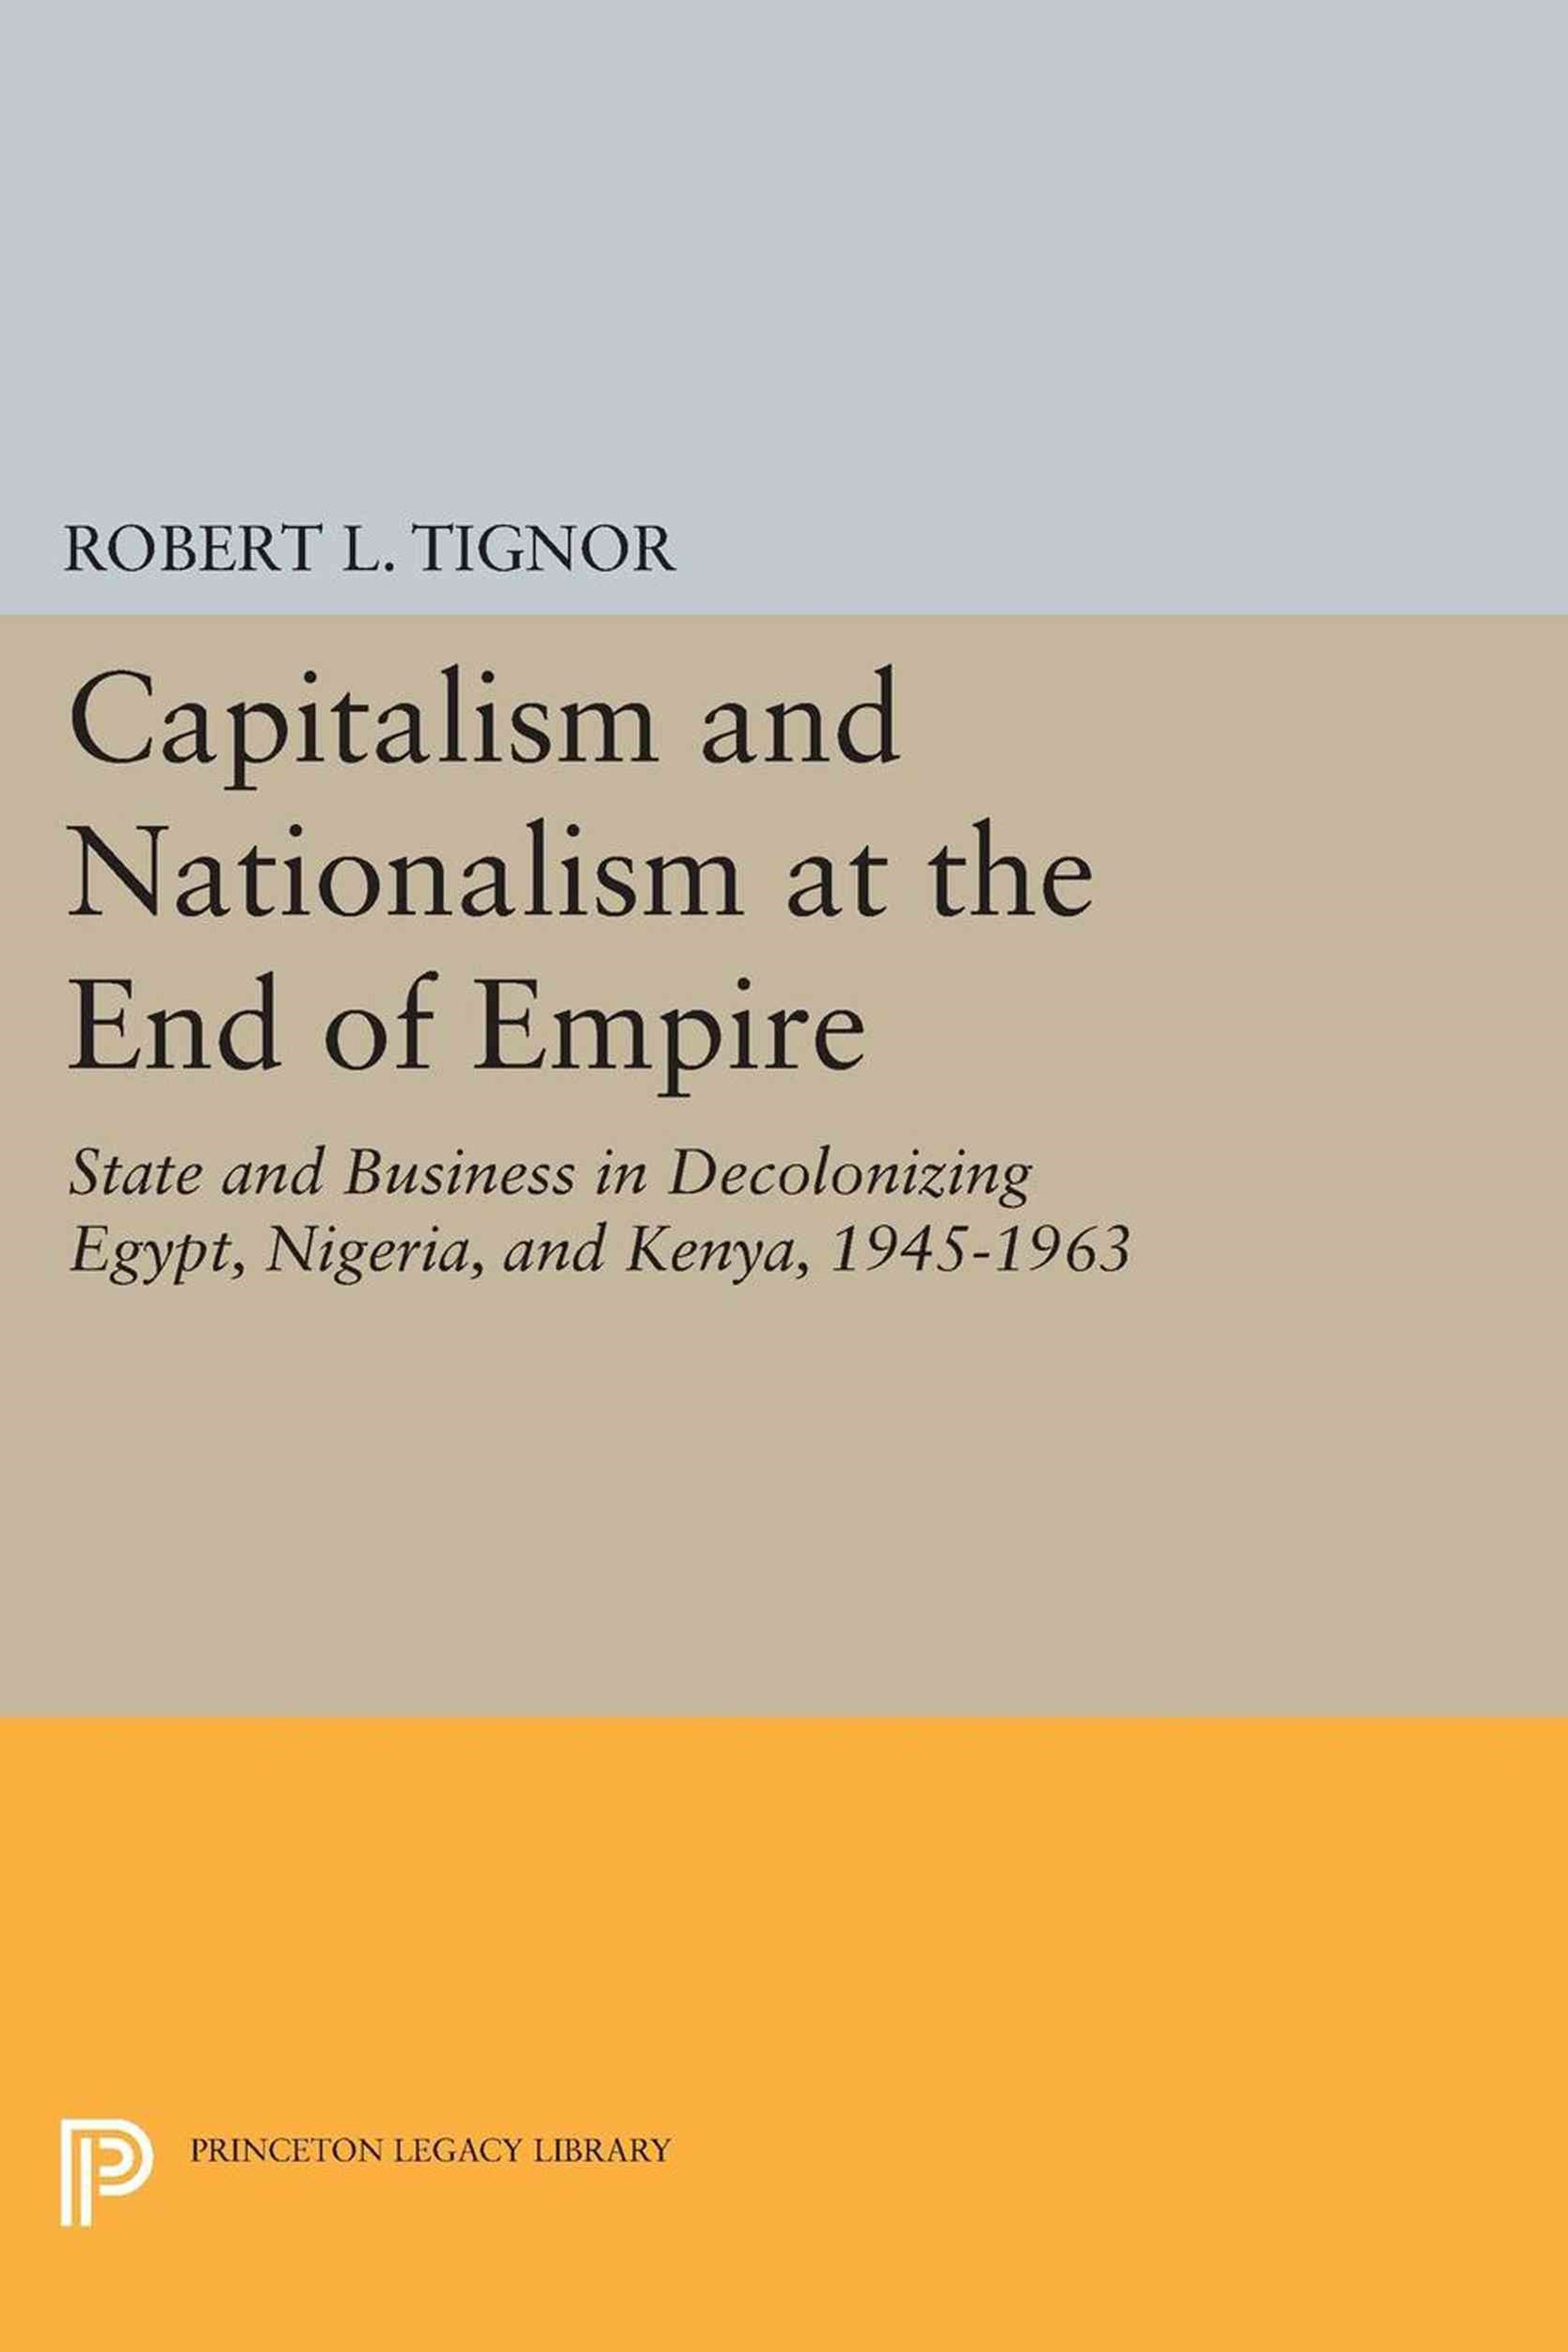 Capitalism and Nationalism at the End of Empire